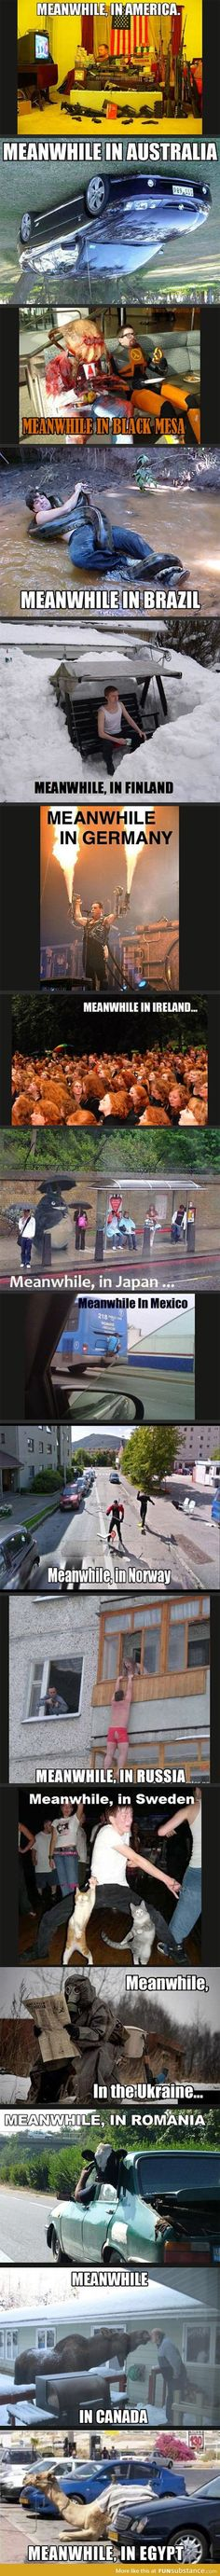 Meanwhile, around in the world